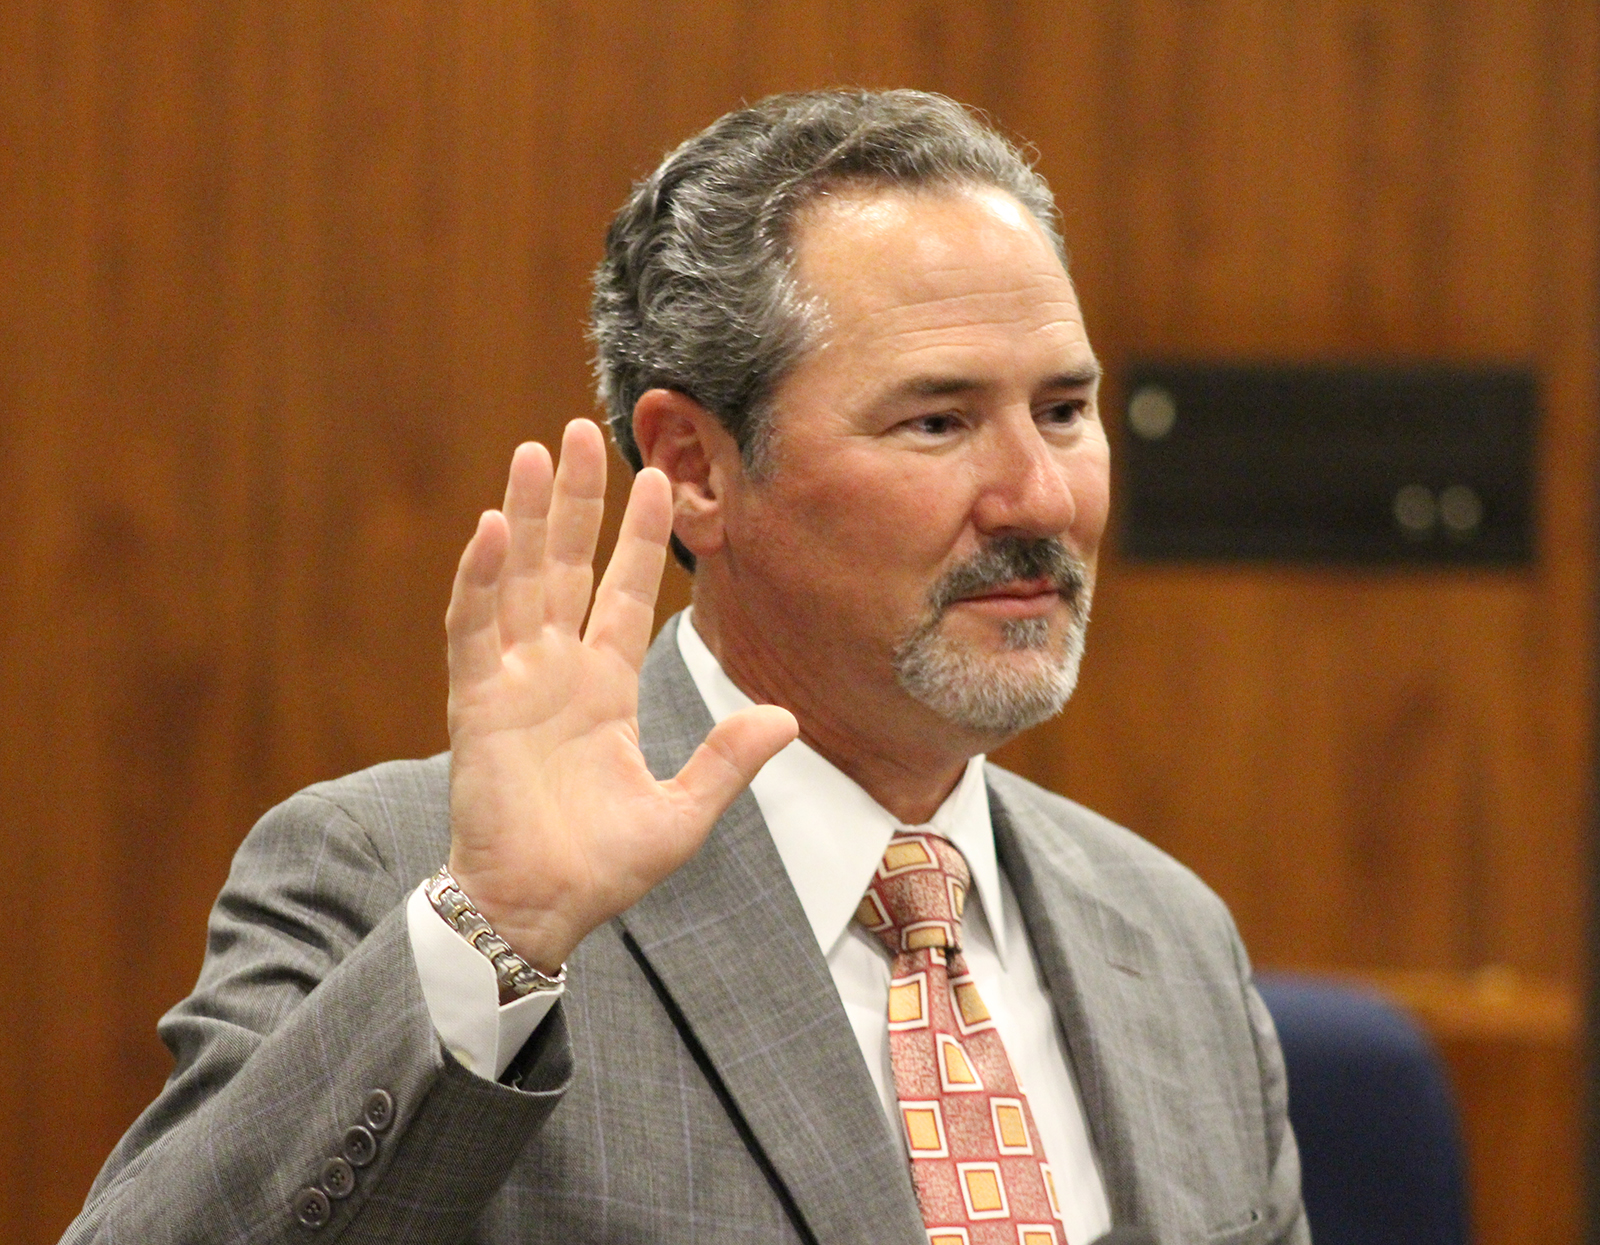 Judge Grant A. Forsberg takes his oath of office in the legisla-tive chambers of the Omaha-Douglas Civic Center on Friday, Aug. 2, 2019. (Photo by Scott Stewart)